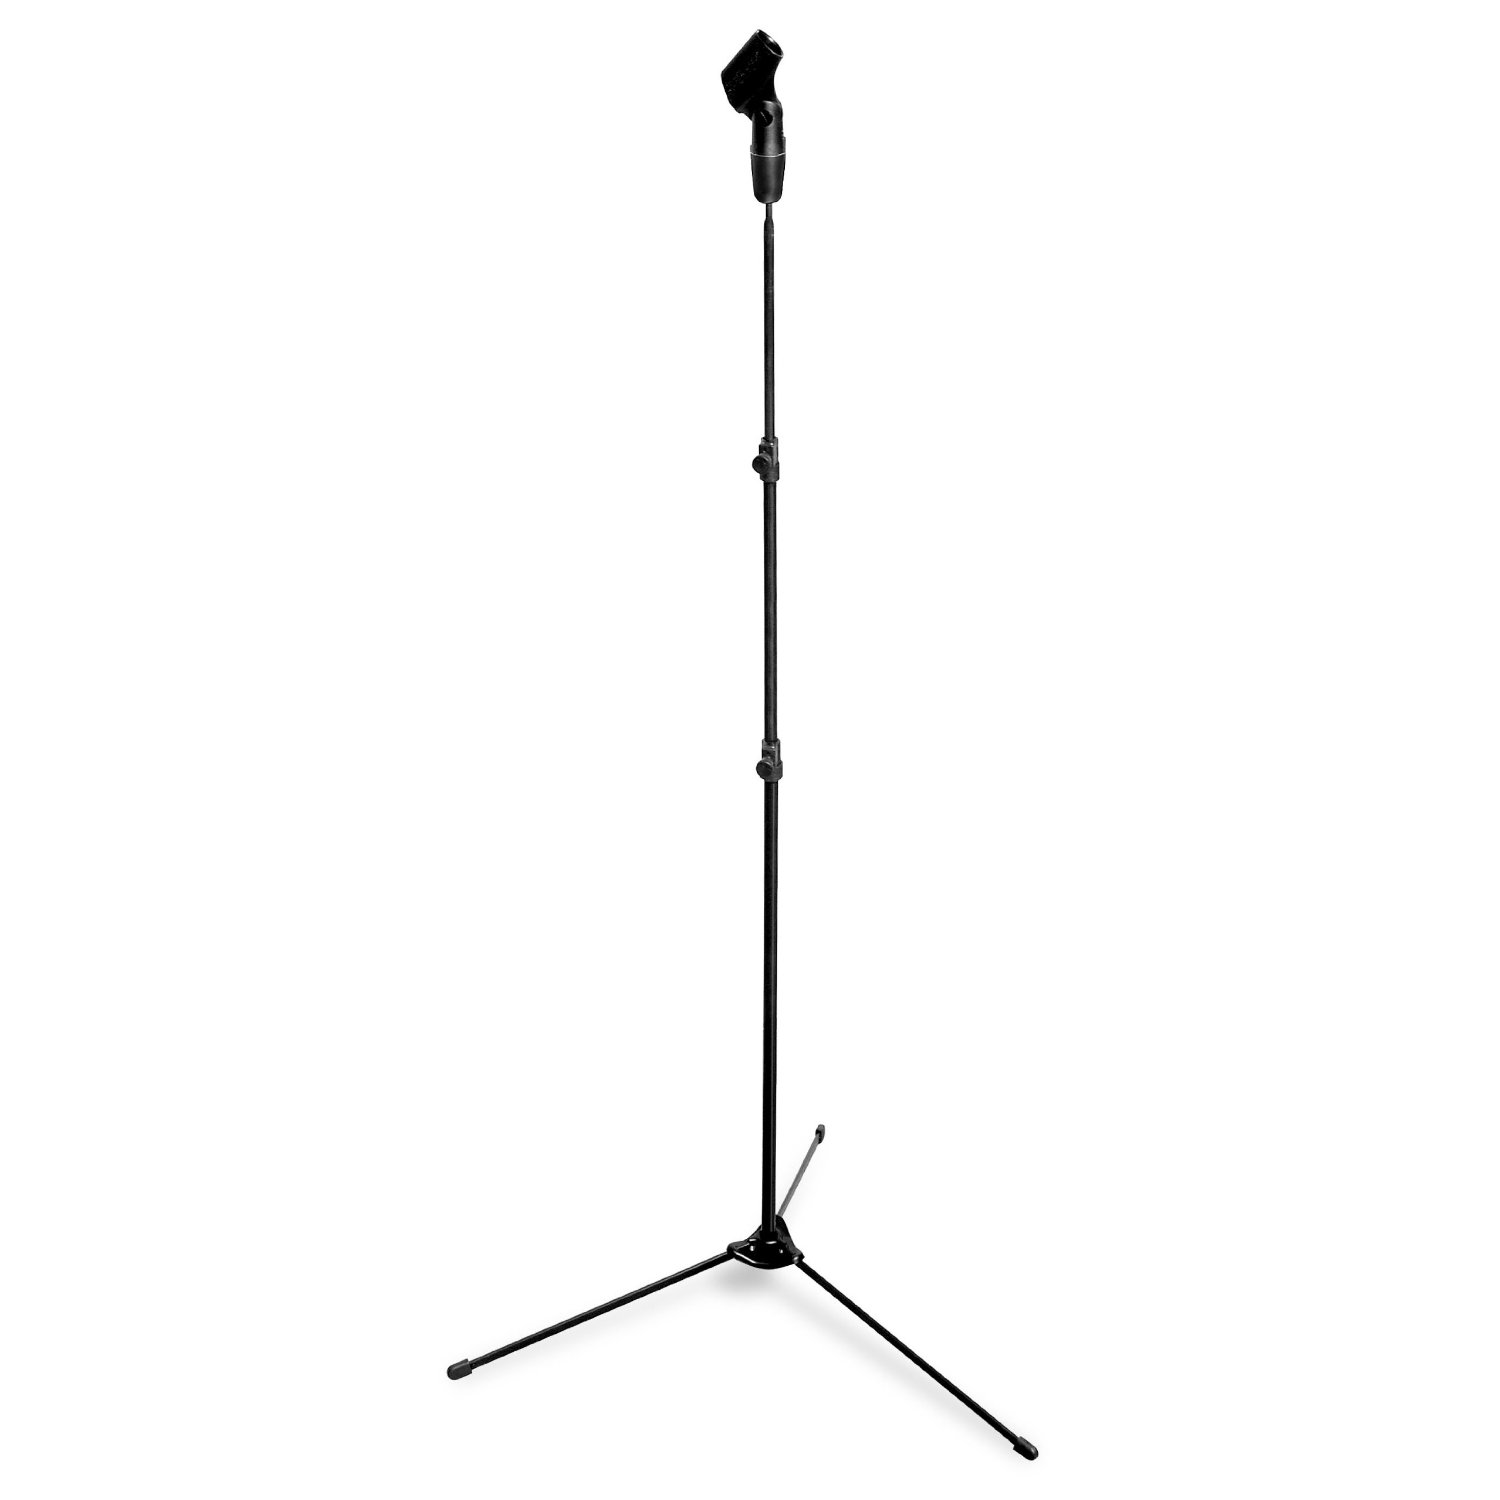 Microphone Stand Clip Art | Clipart Panda - Free Clipart ...